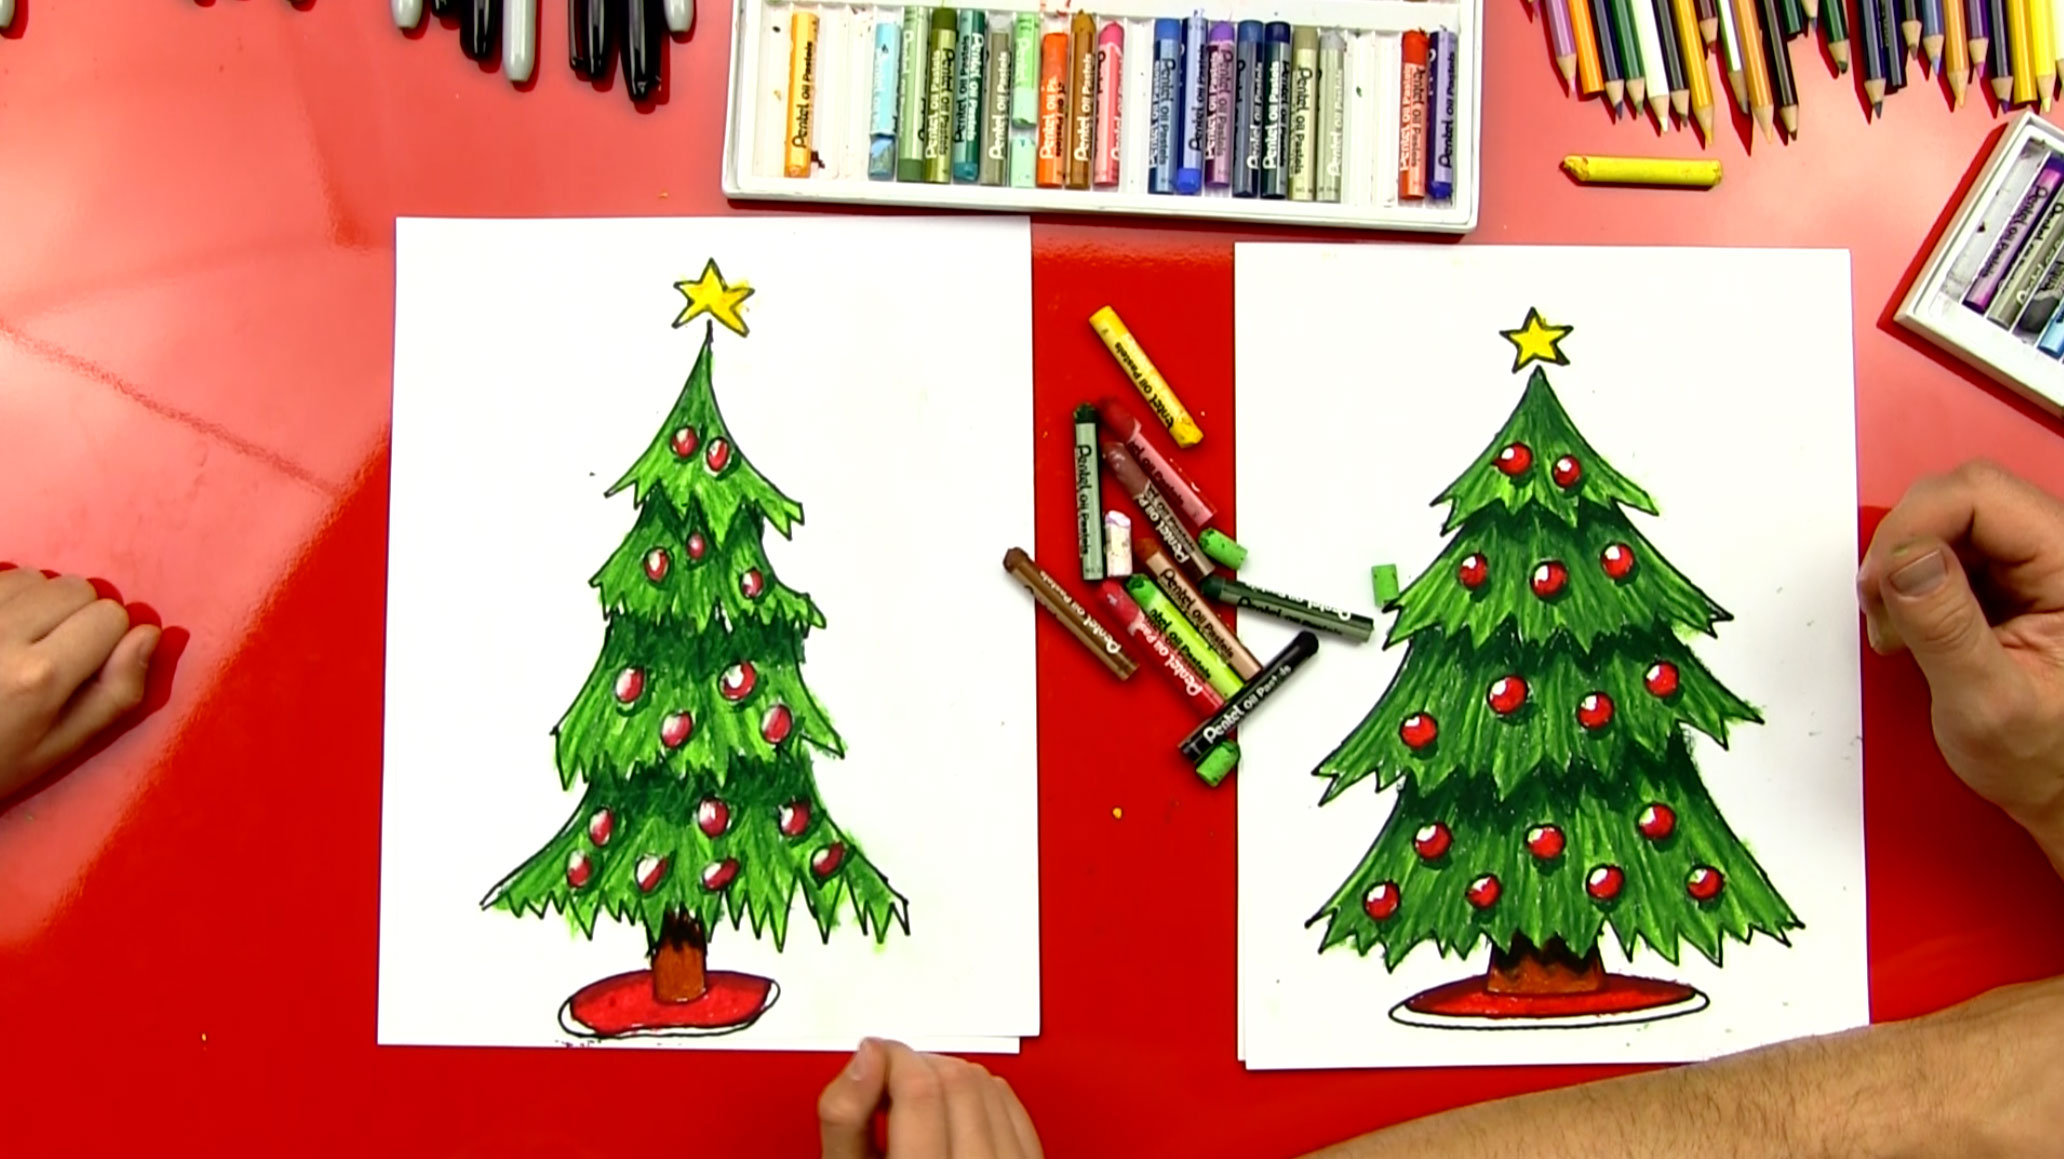 How To Draw A Christmas Tree Step By Step For Beginners.How To Draw A Christmas Tree Art For Kids Hub